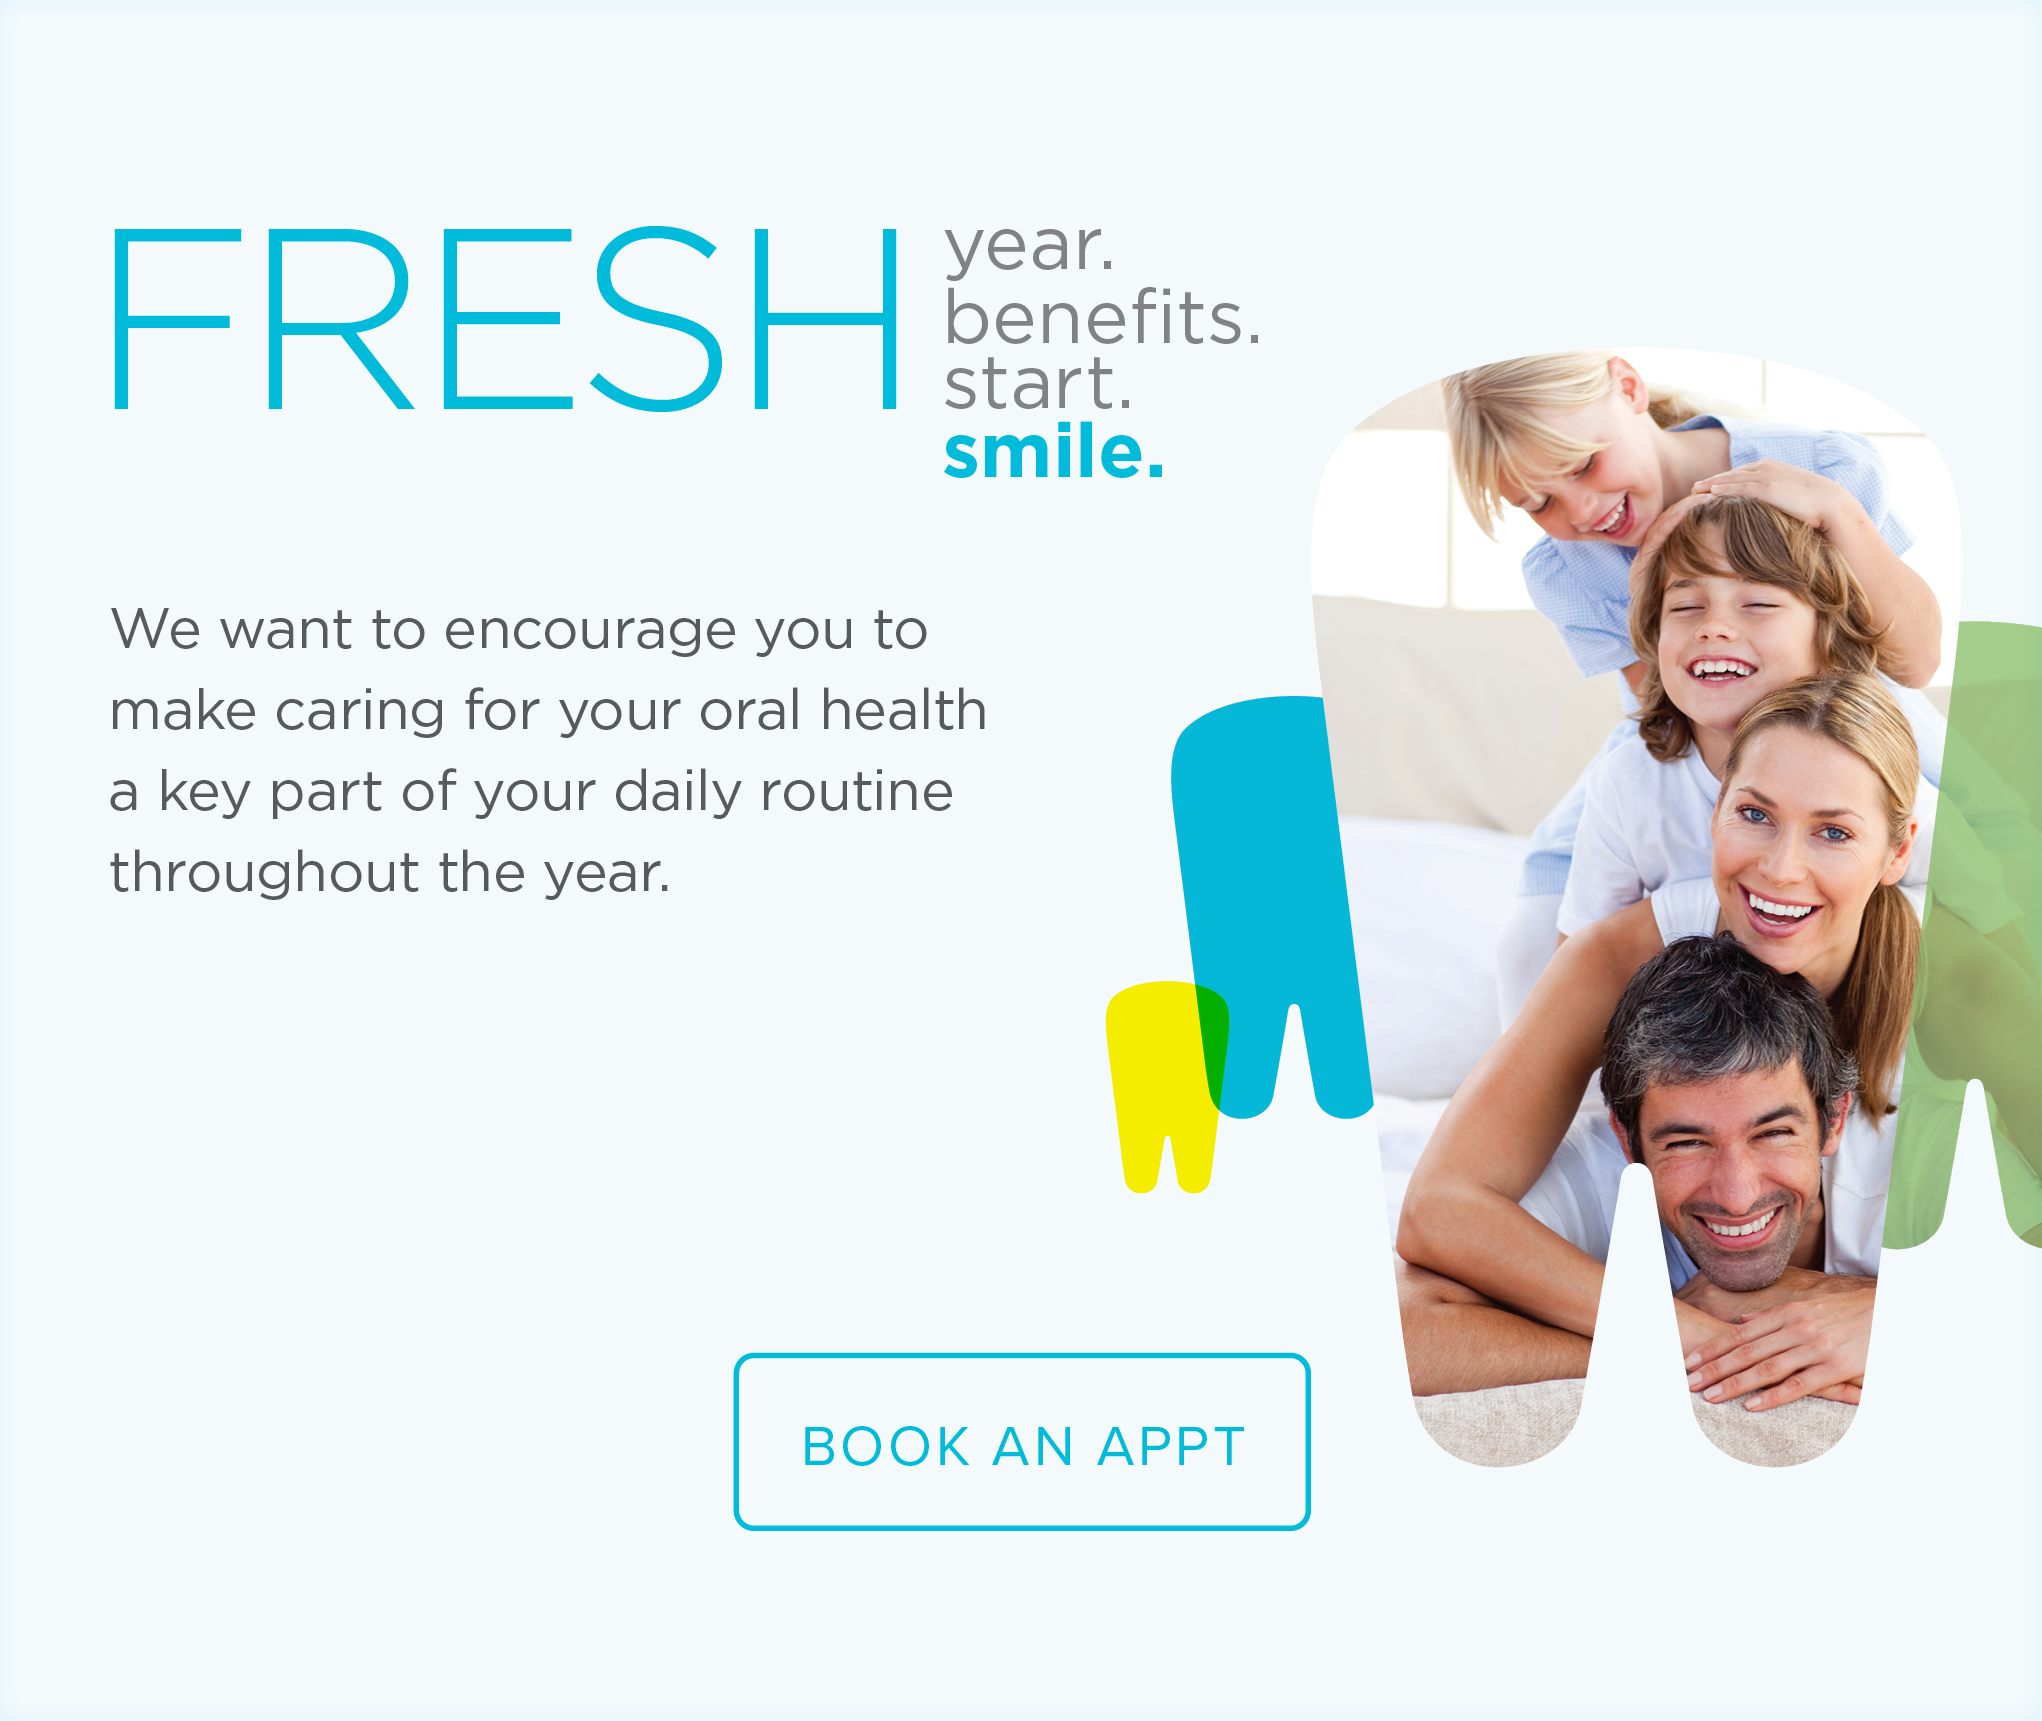 Westpointe Modern Dentistry - Make the Most of Your Benefits